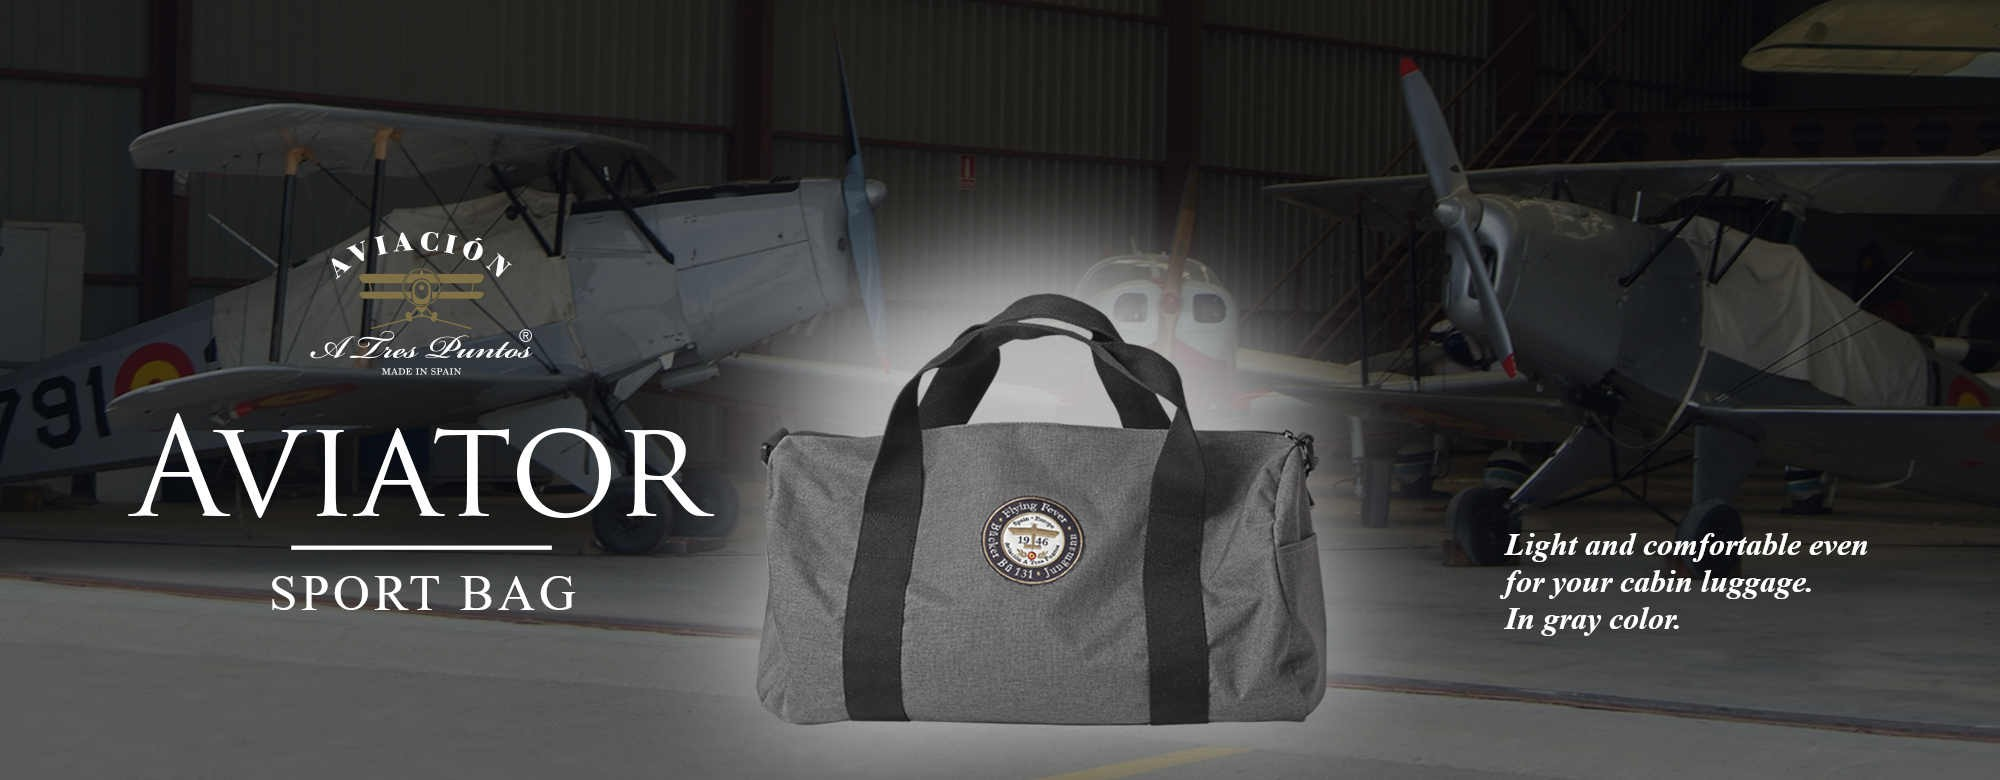 Sport Bag Aviator